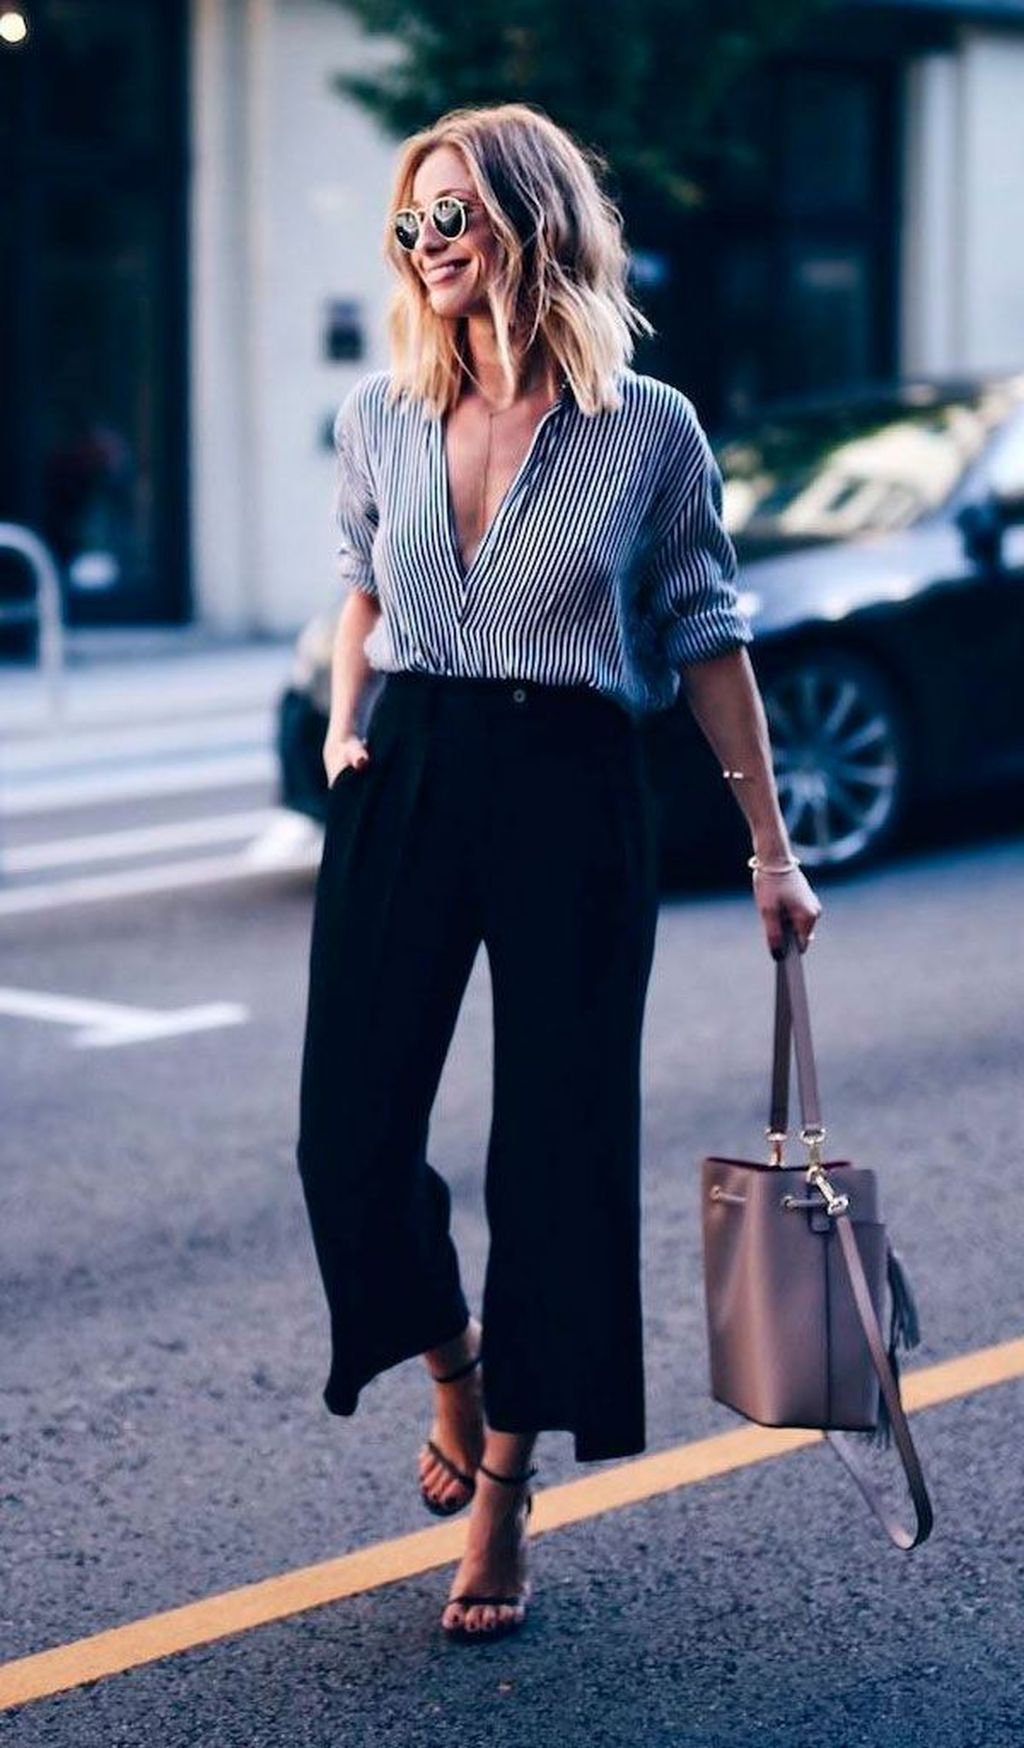 35 Lovely Street Style Outfit Ideas For Summer | Fashion